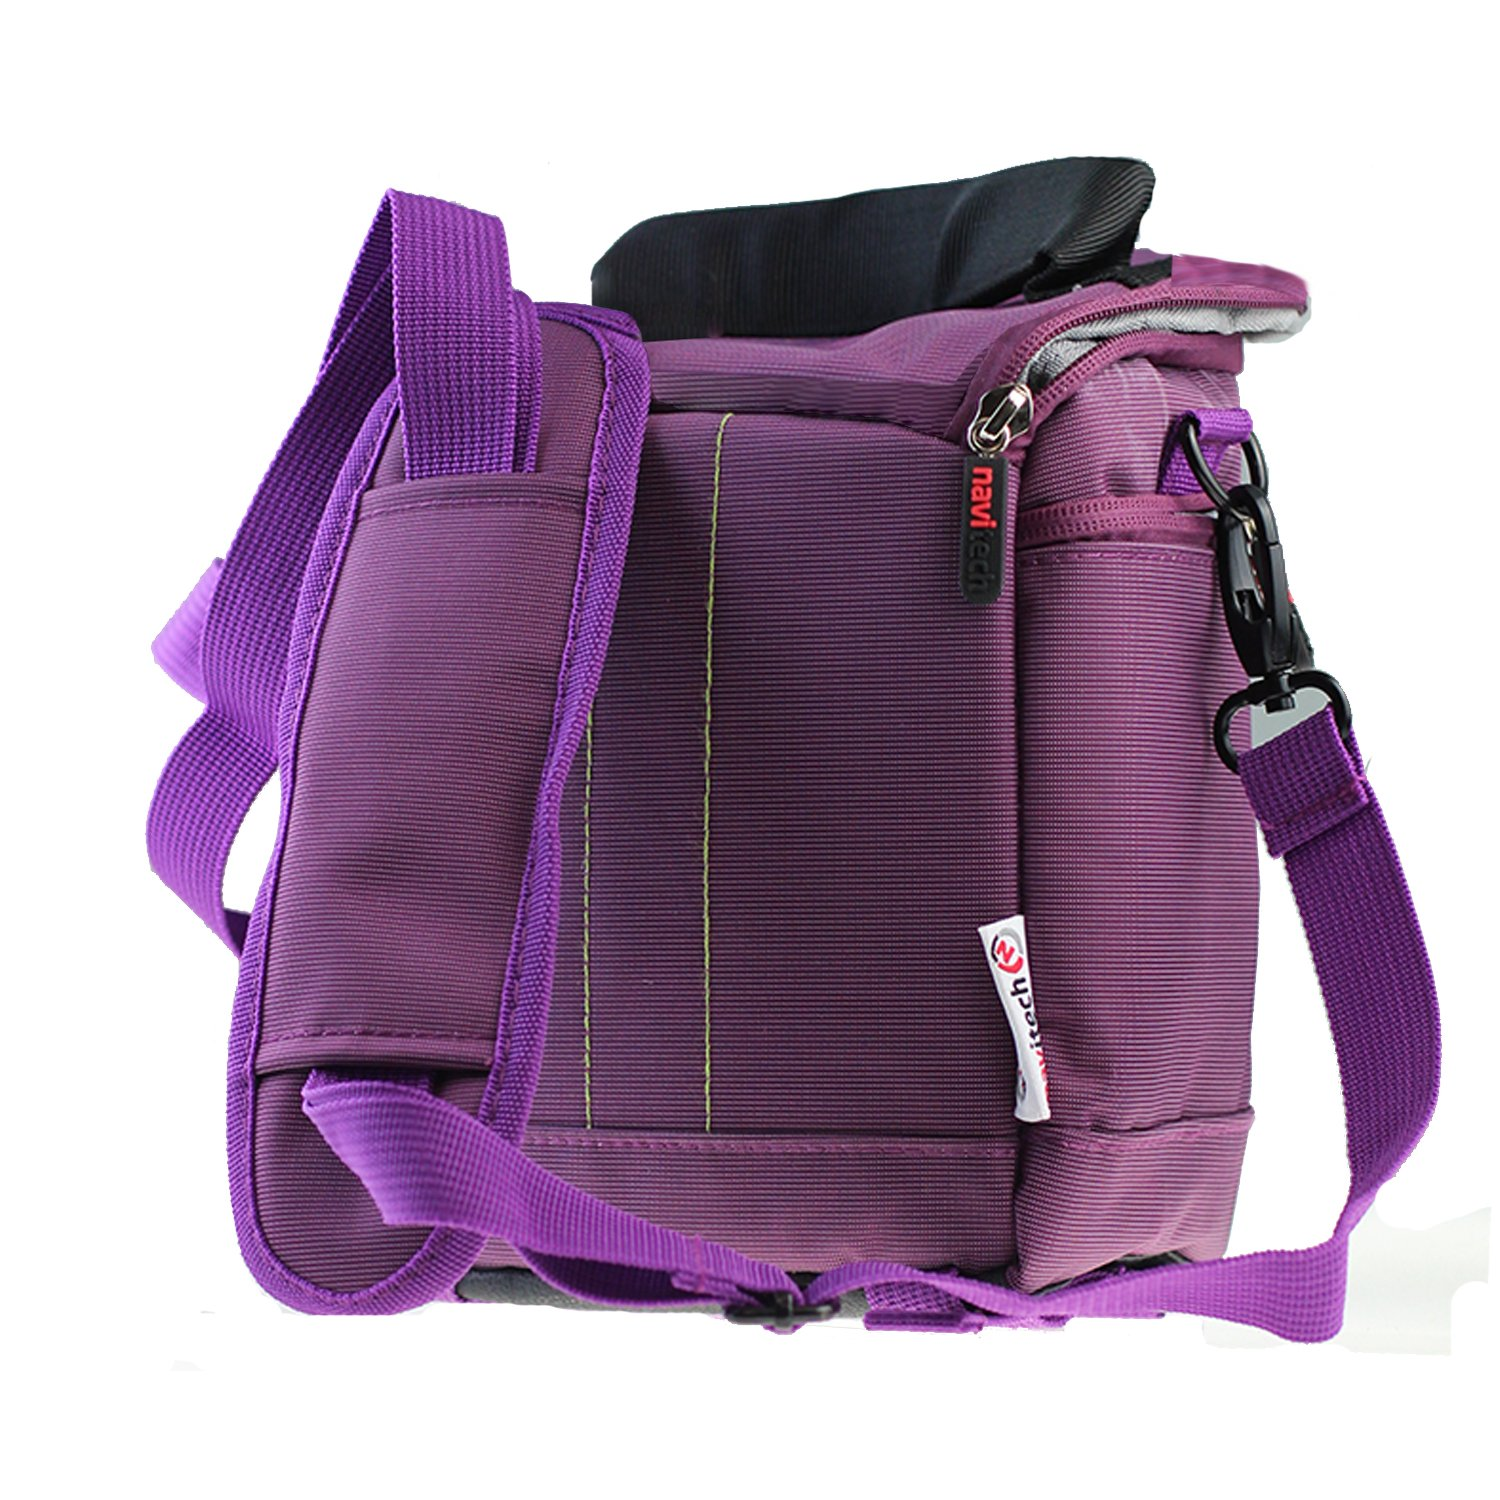 Navitech Purple Protective Portable Handheld Binocular Case and Travel Bag Compatible with The Leica Trinovid 8 x 42 HD